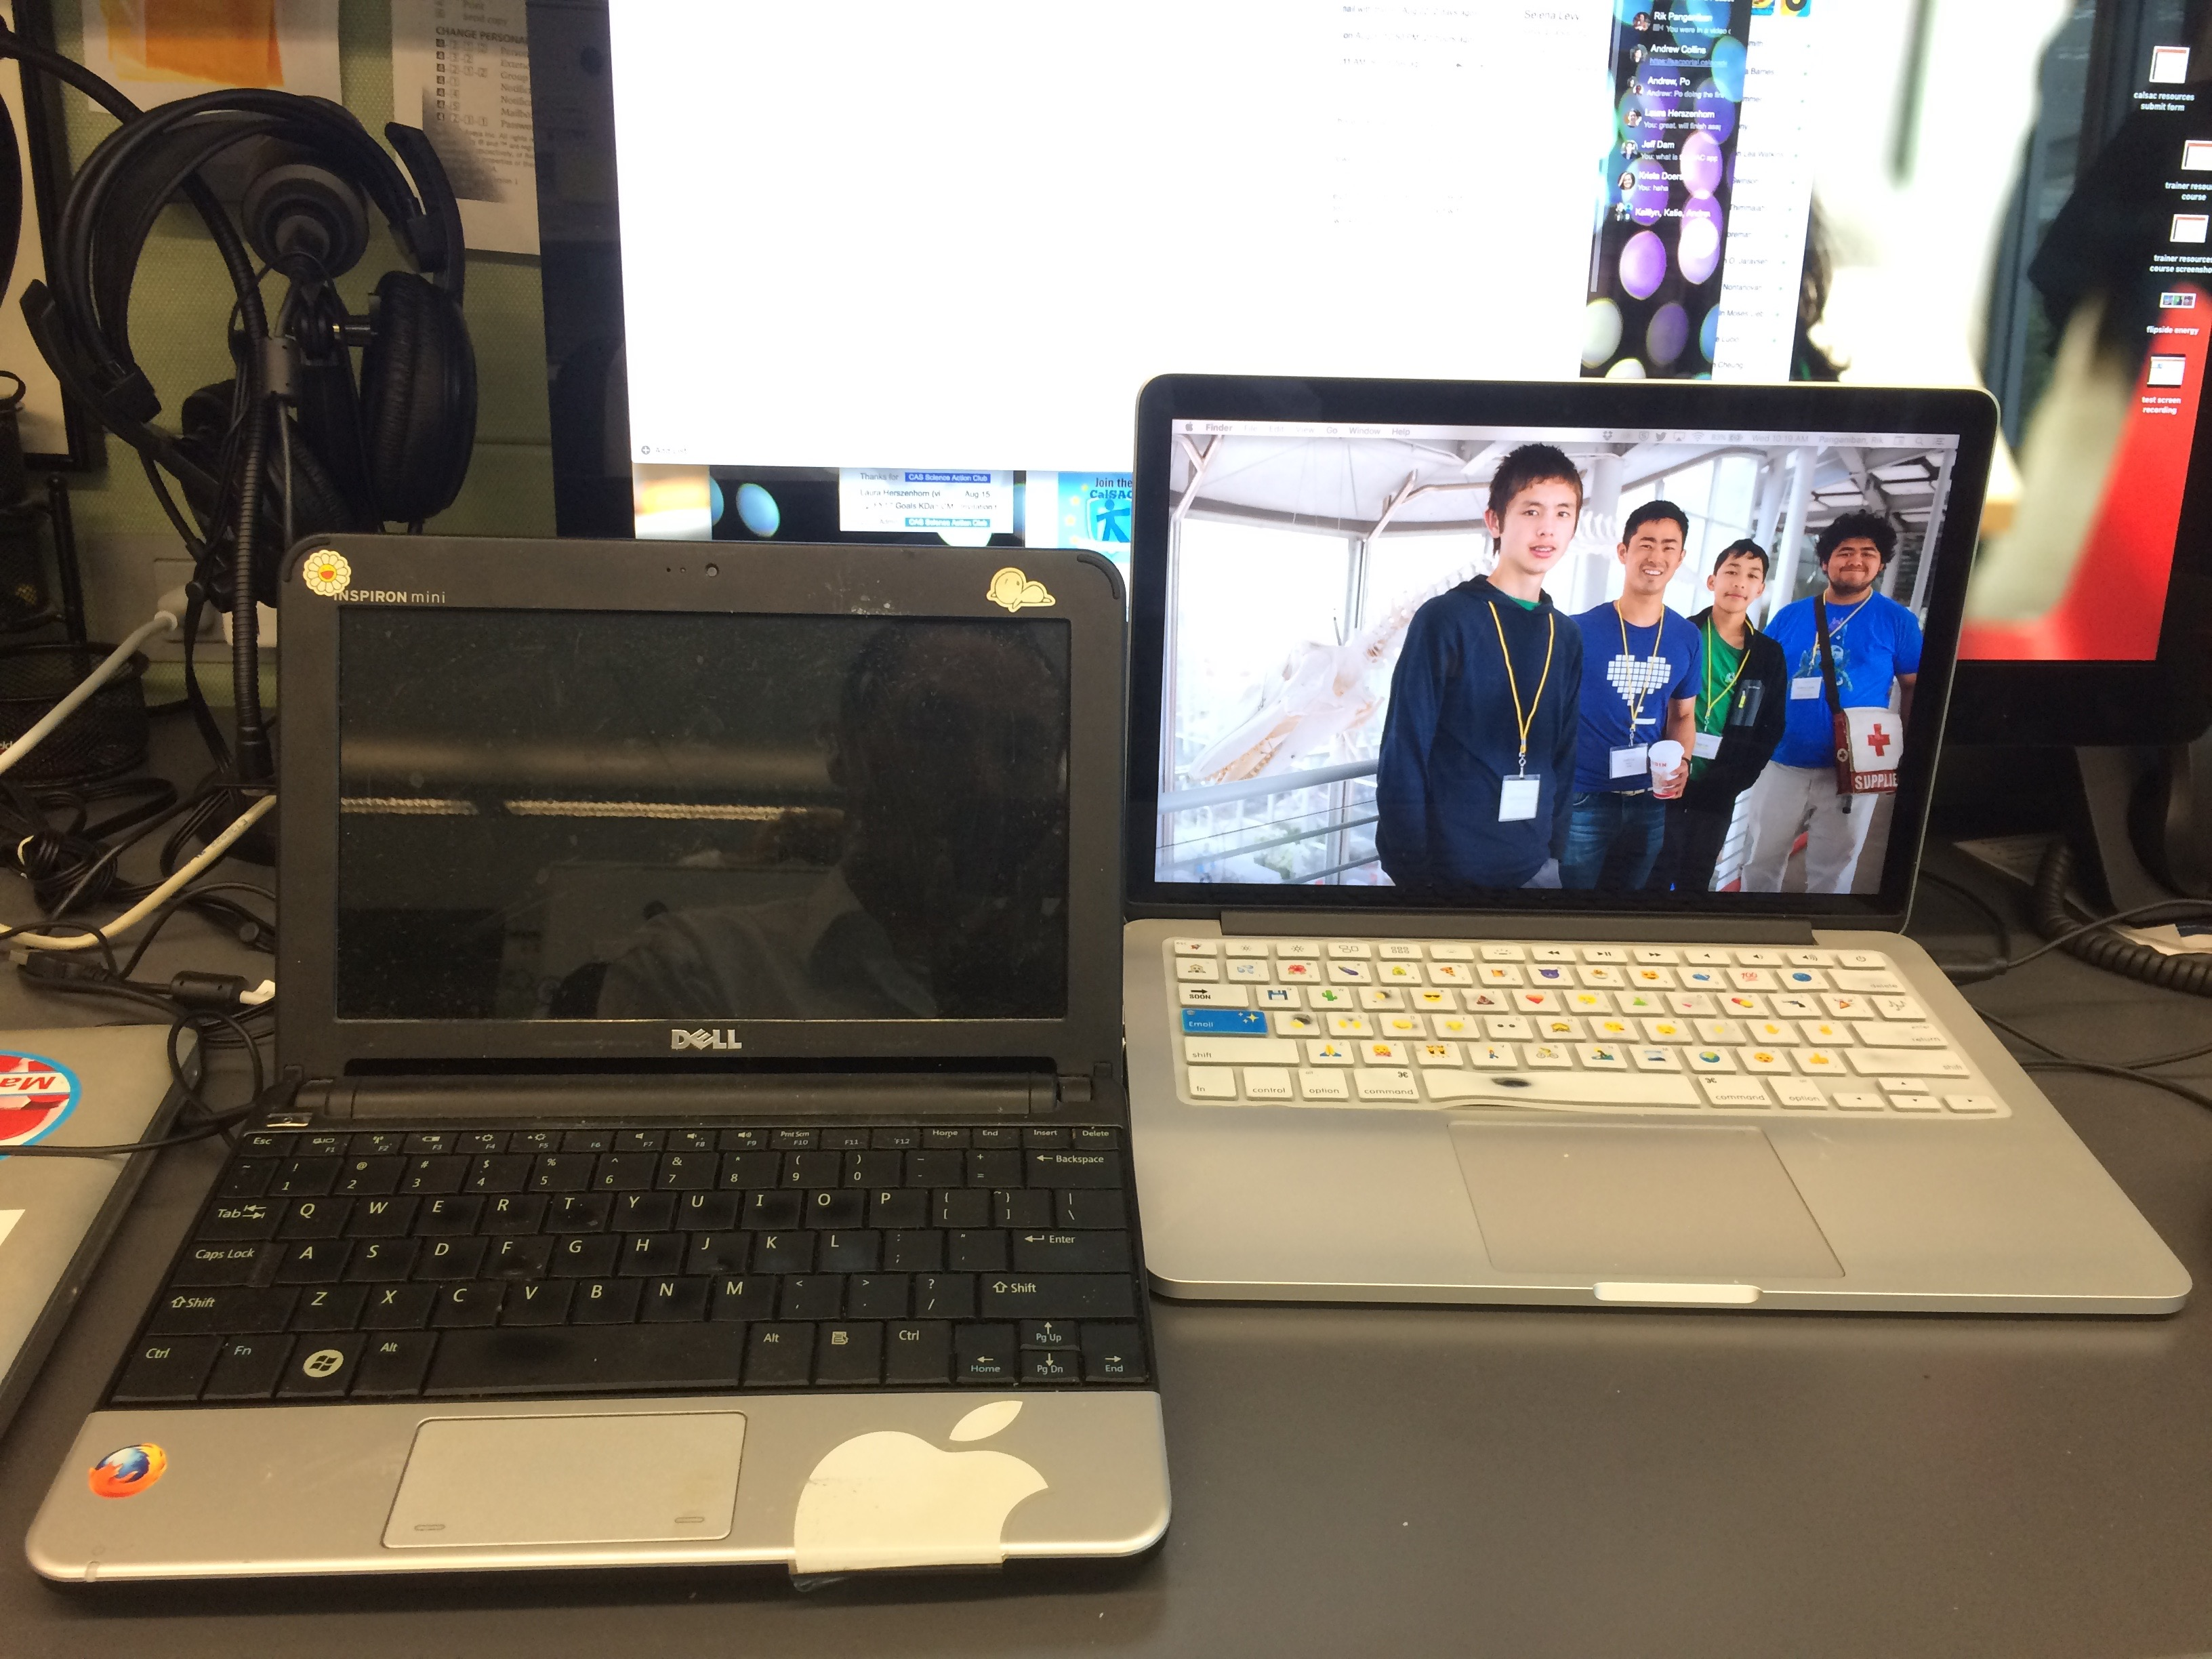 Dell netbook and MacBook Pro